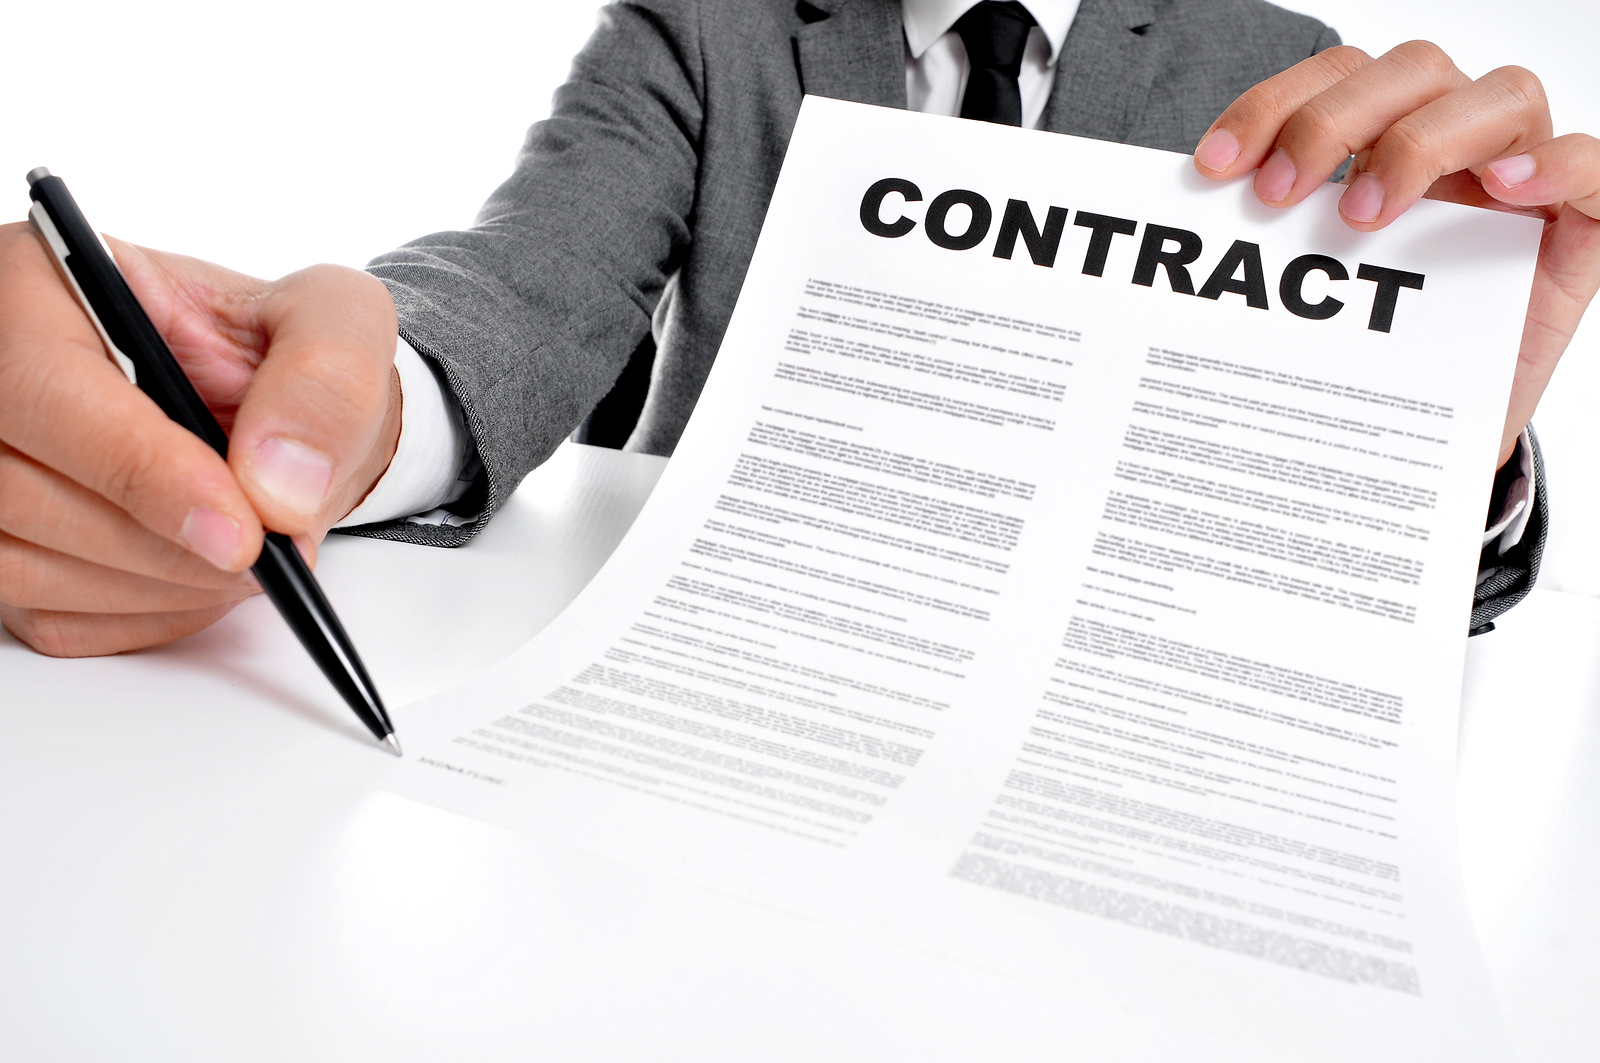 landscape-contracts-the-small-print Landscape QS  - Landscape Cost Consultant